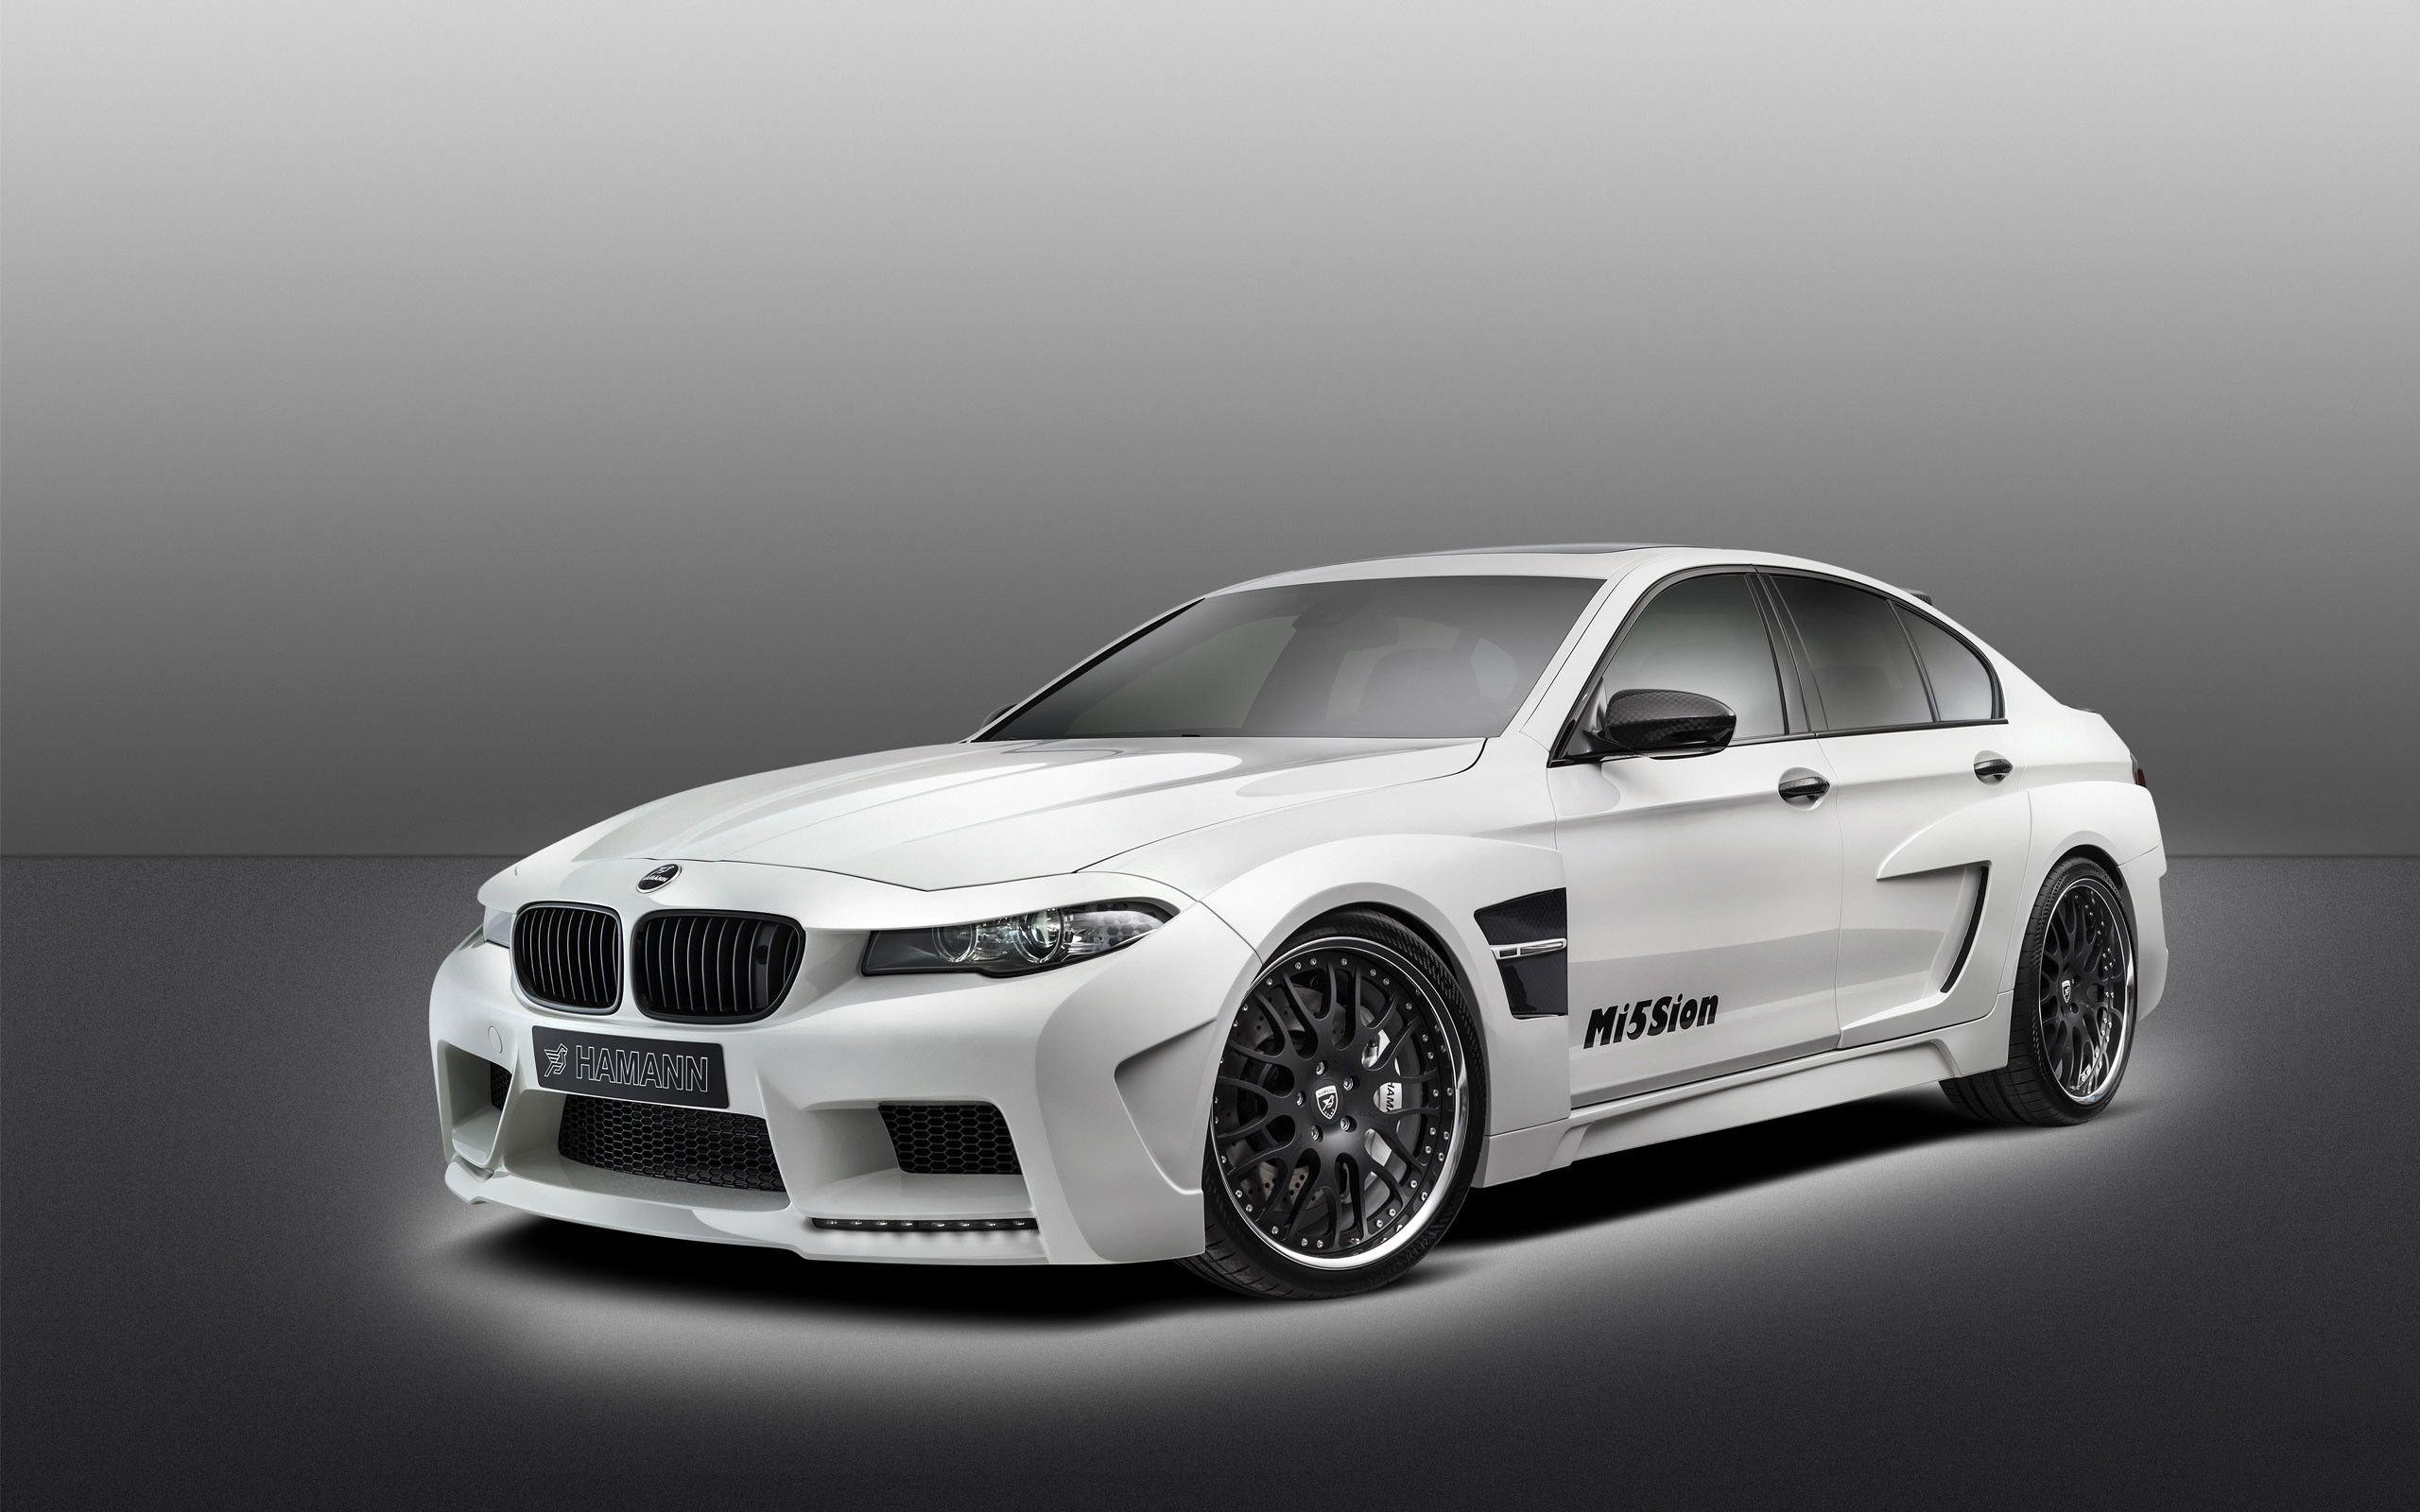 2013 BMW M5 Mission Wallpapers